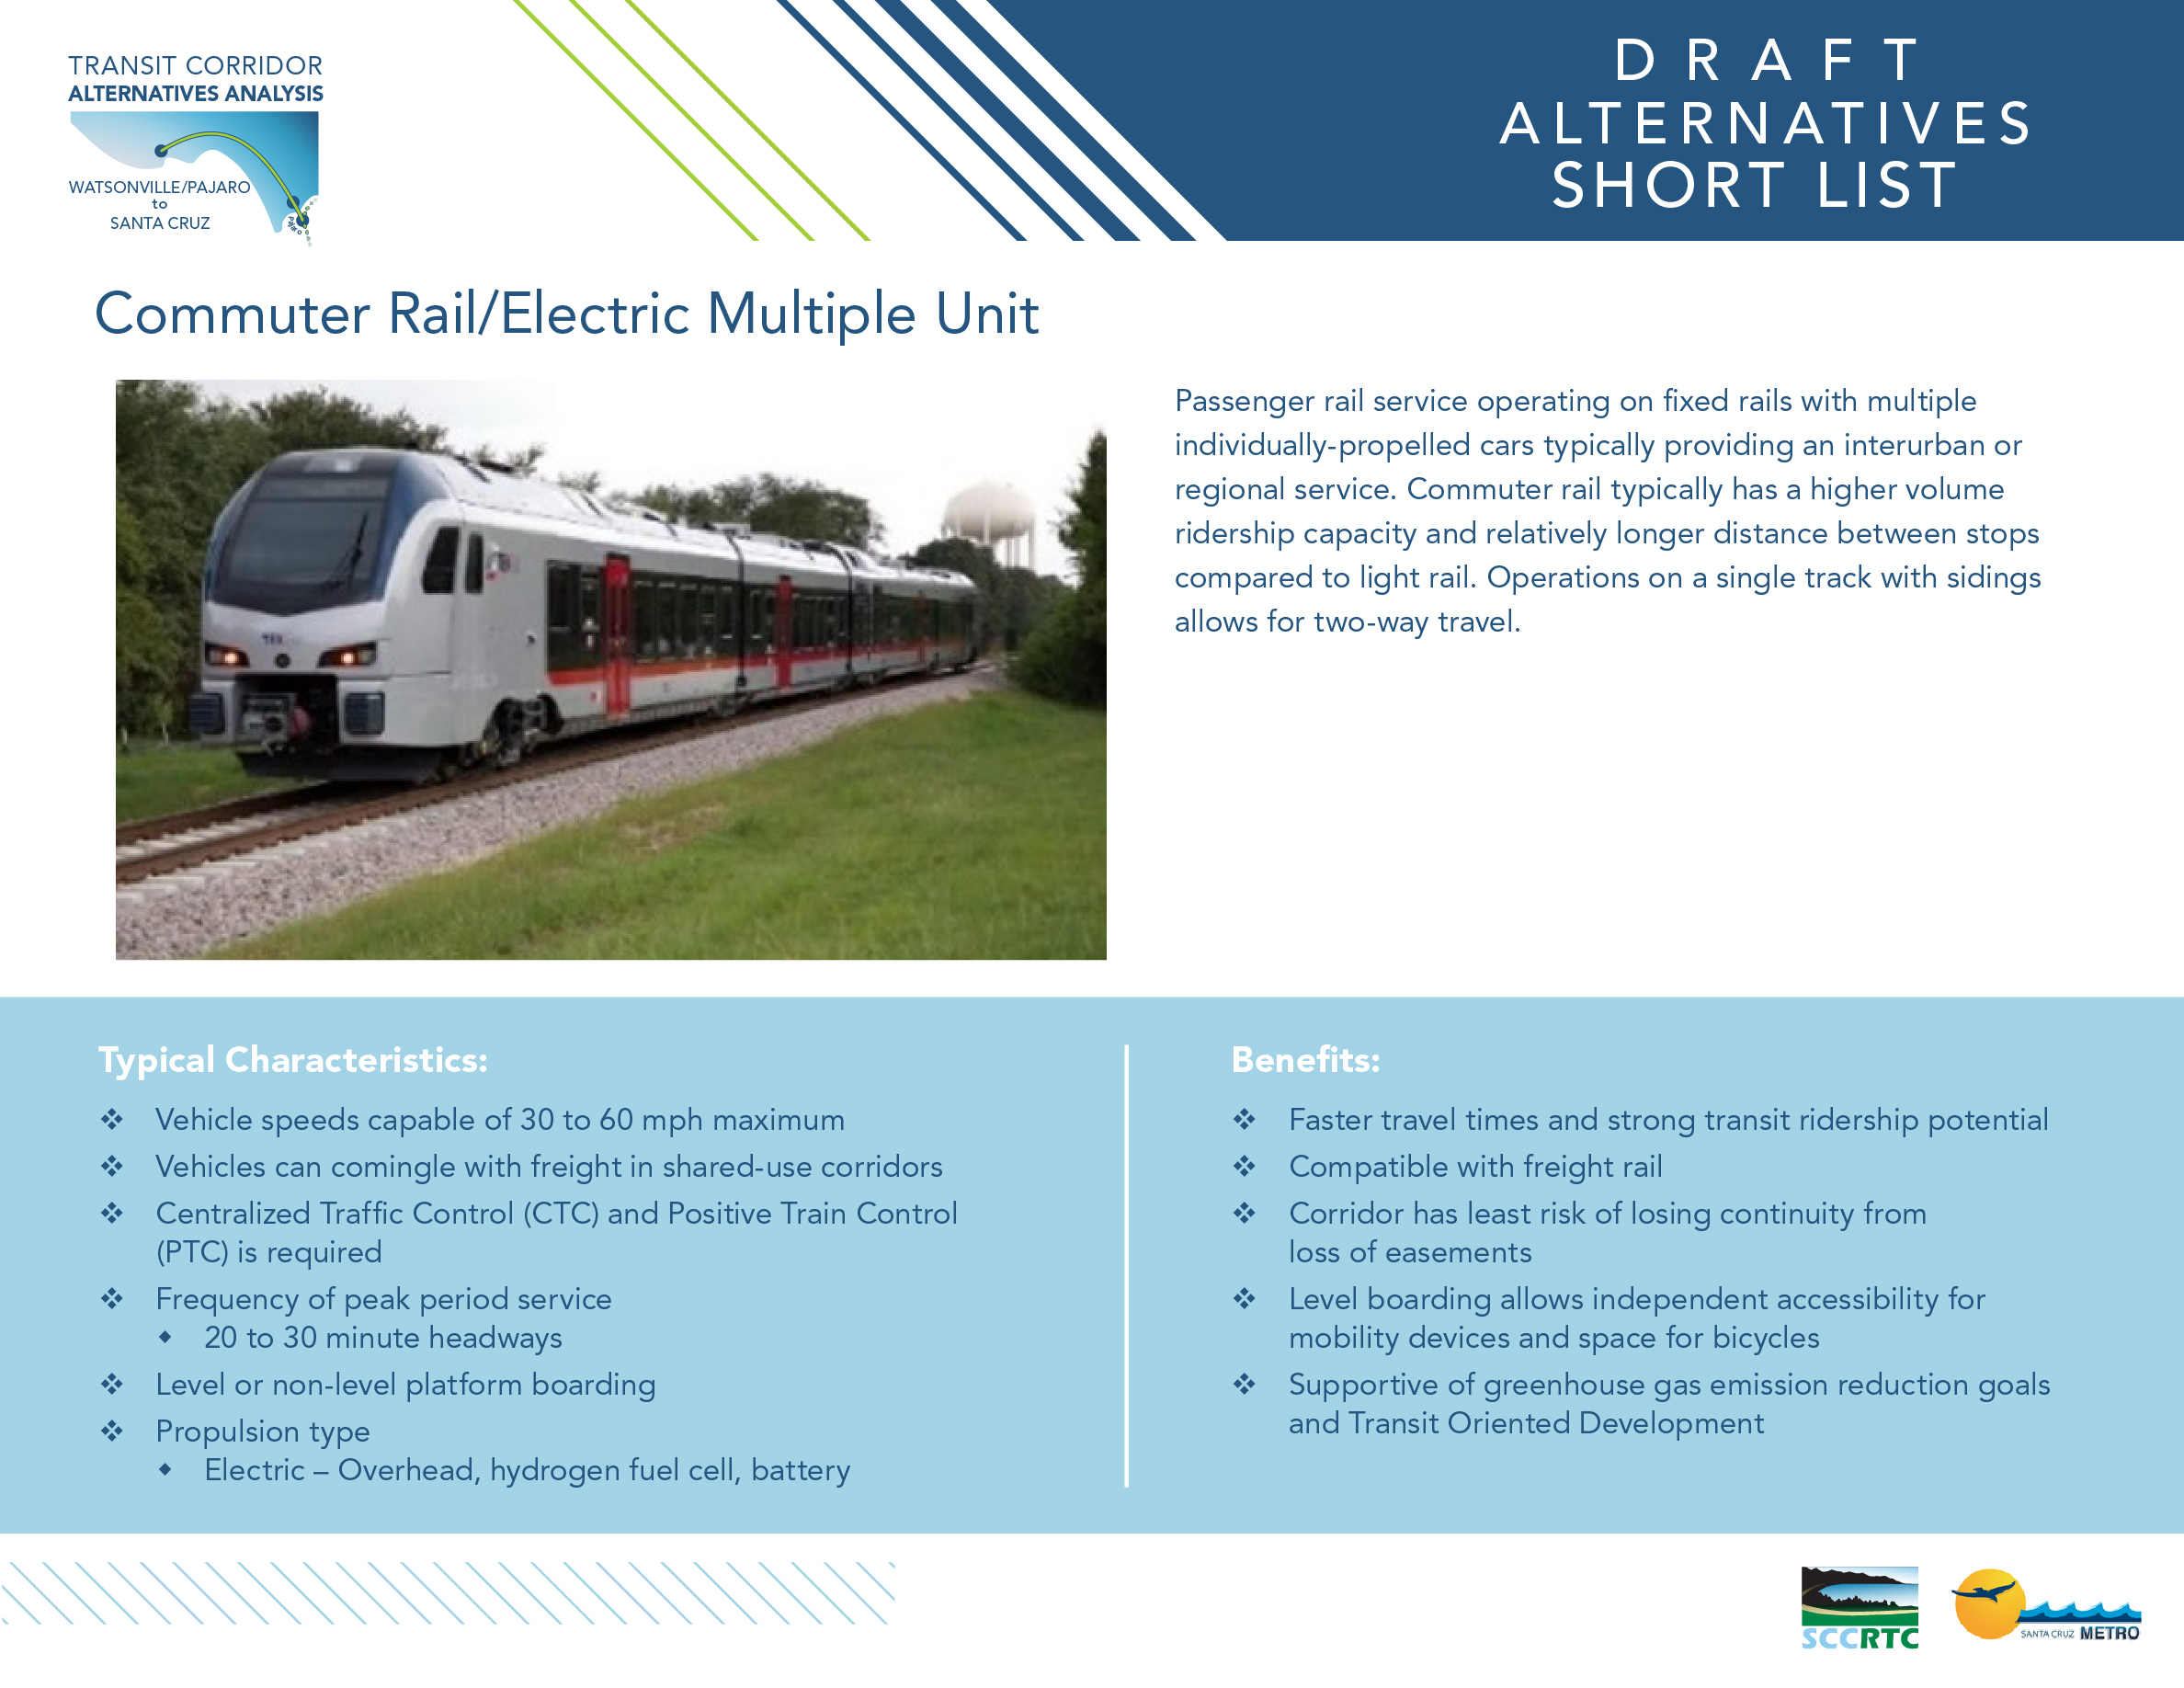 Board 4: Draft Alternative- Short List Commuter Rail/Electric Multiple Unit Passenger rail service operating on fixed rails with multiple individually-propelled cars typically providing an interurban or regional service. Commuter rail typically has a higher volume ridership capacity and relatively longer distance between stops compared to light rail. Operations on a single track with sidings allows for two-way travel. Typical Characteristics: • Vehicle speeds capable of 30 to 60 mph maximum • Vehicles can comingle with freight in shared-use corridors • Centralized Traffic Control (CTC) and Positive Train Control (PTC) is required • Frequency of peak period service • 20 to 30 minute headways • Level or non-level platform boarding • Propulsion type • Electric – Overhead, hydrogen fuel cell, battery Benefits: • Faster travel times and strong transit ridership potential • Compatible with freight rail • Corridor has least risk of losing continuity from loss of easements • Level boarding allows independent accessibility for mobility devices and space for bicycles • Supportive of greenhouse gas emission reduction goals and Transit Oriented Development